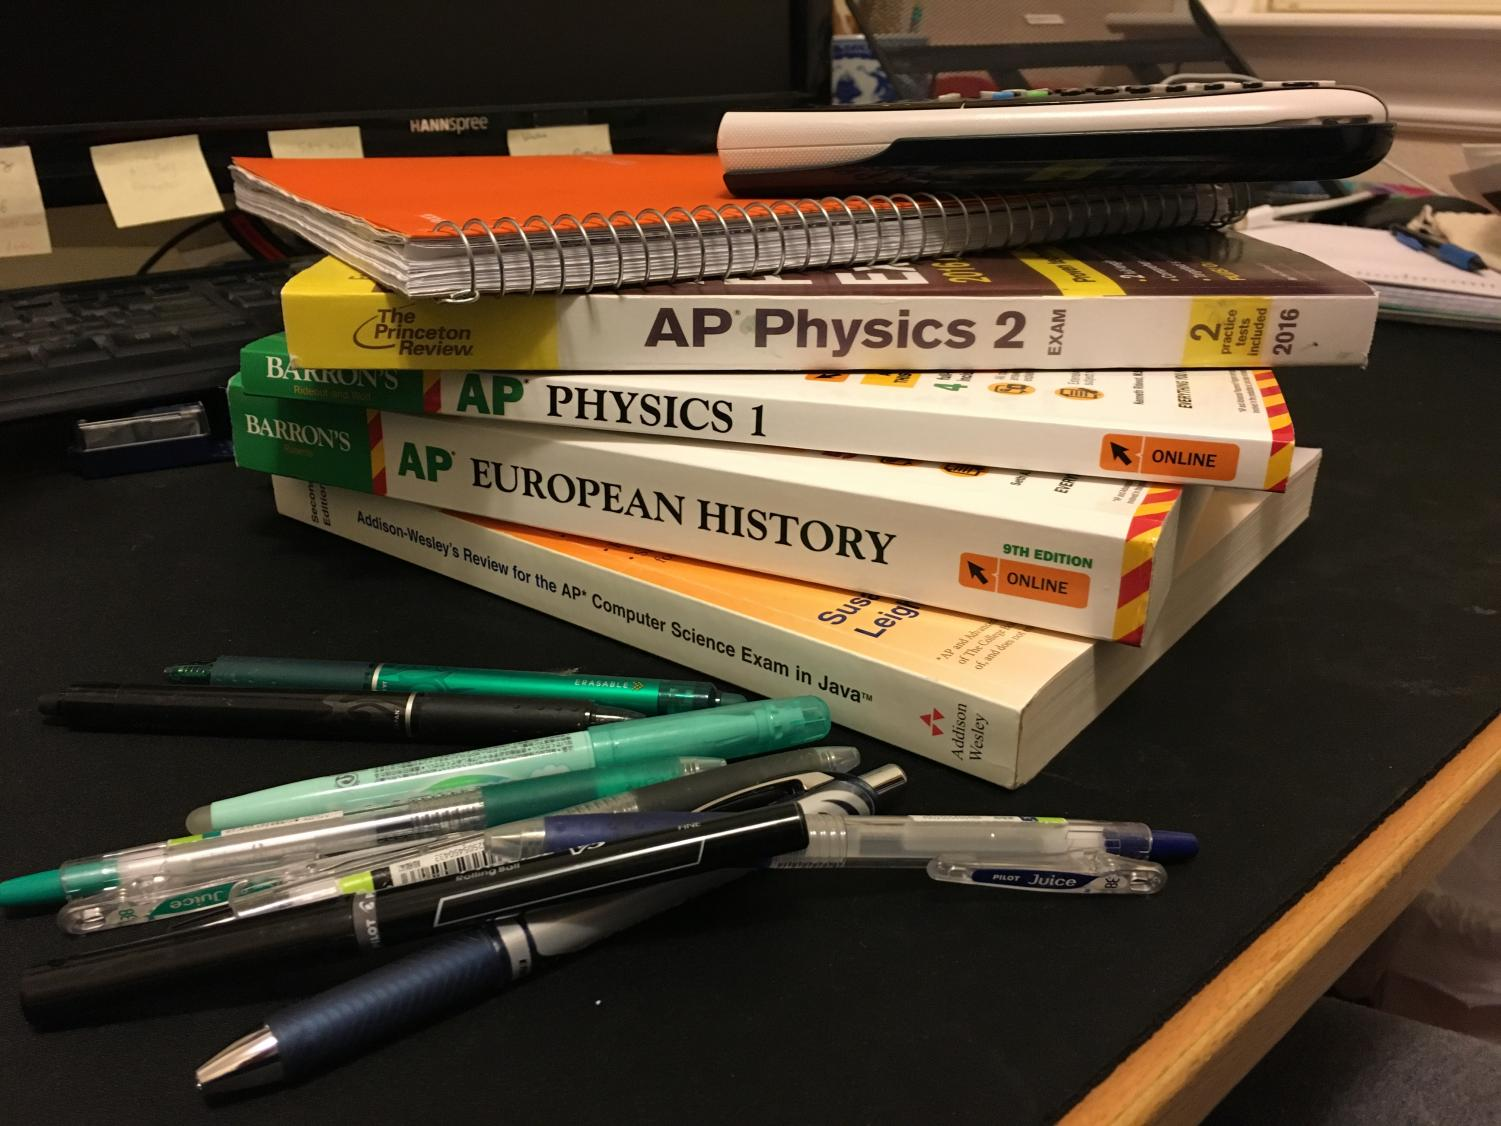 A stack of AP prep books. While students across all grades are busy reviewing for APs and other end-of-the-year cumulative exams, Director of Standardized Testing and Scheduling Troy Thiele works behind the scenes to coordinate and coordinate testing logistics.